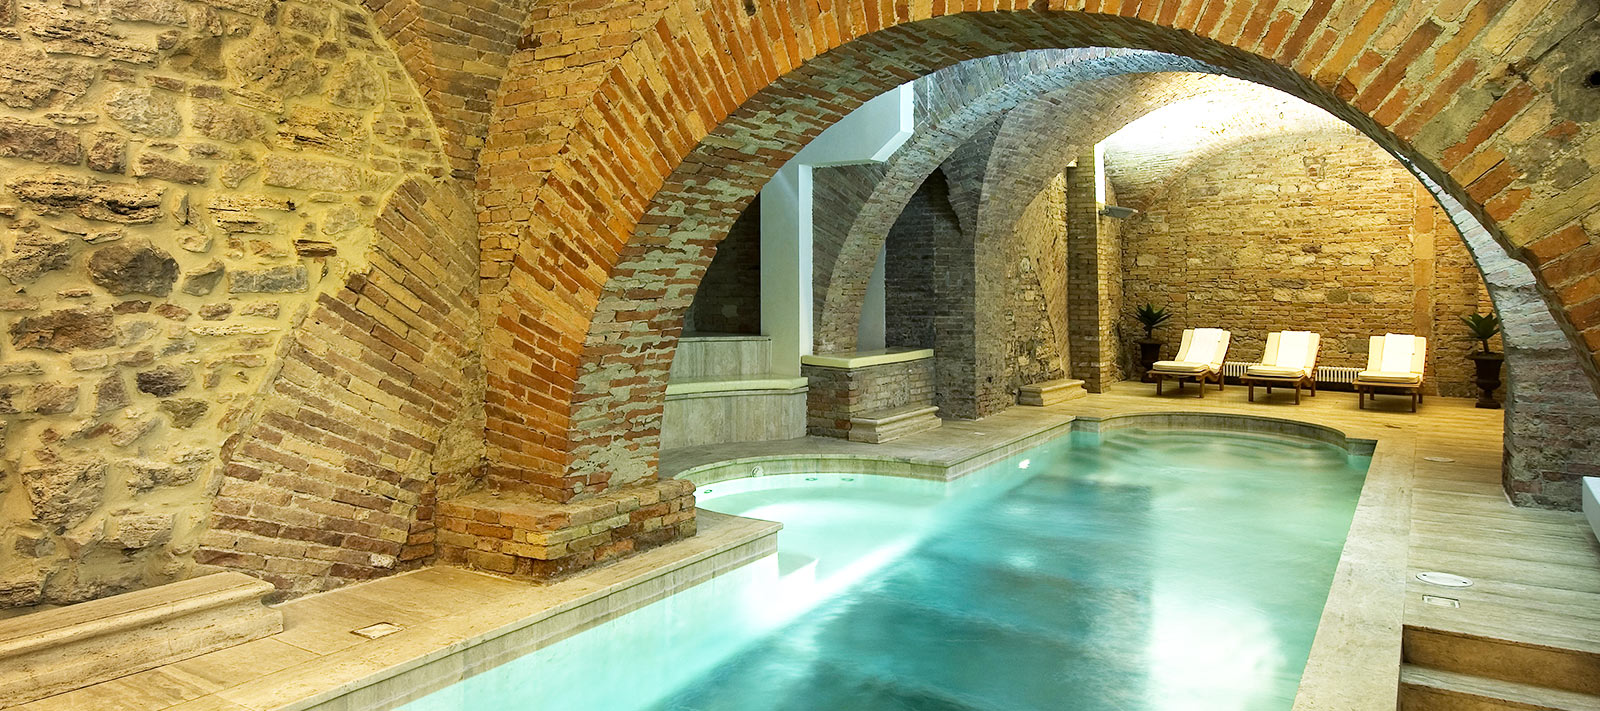 piscine per il wellness e per le spa